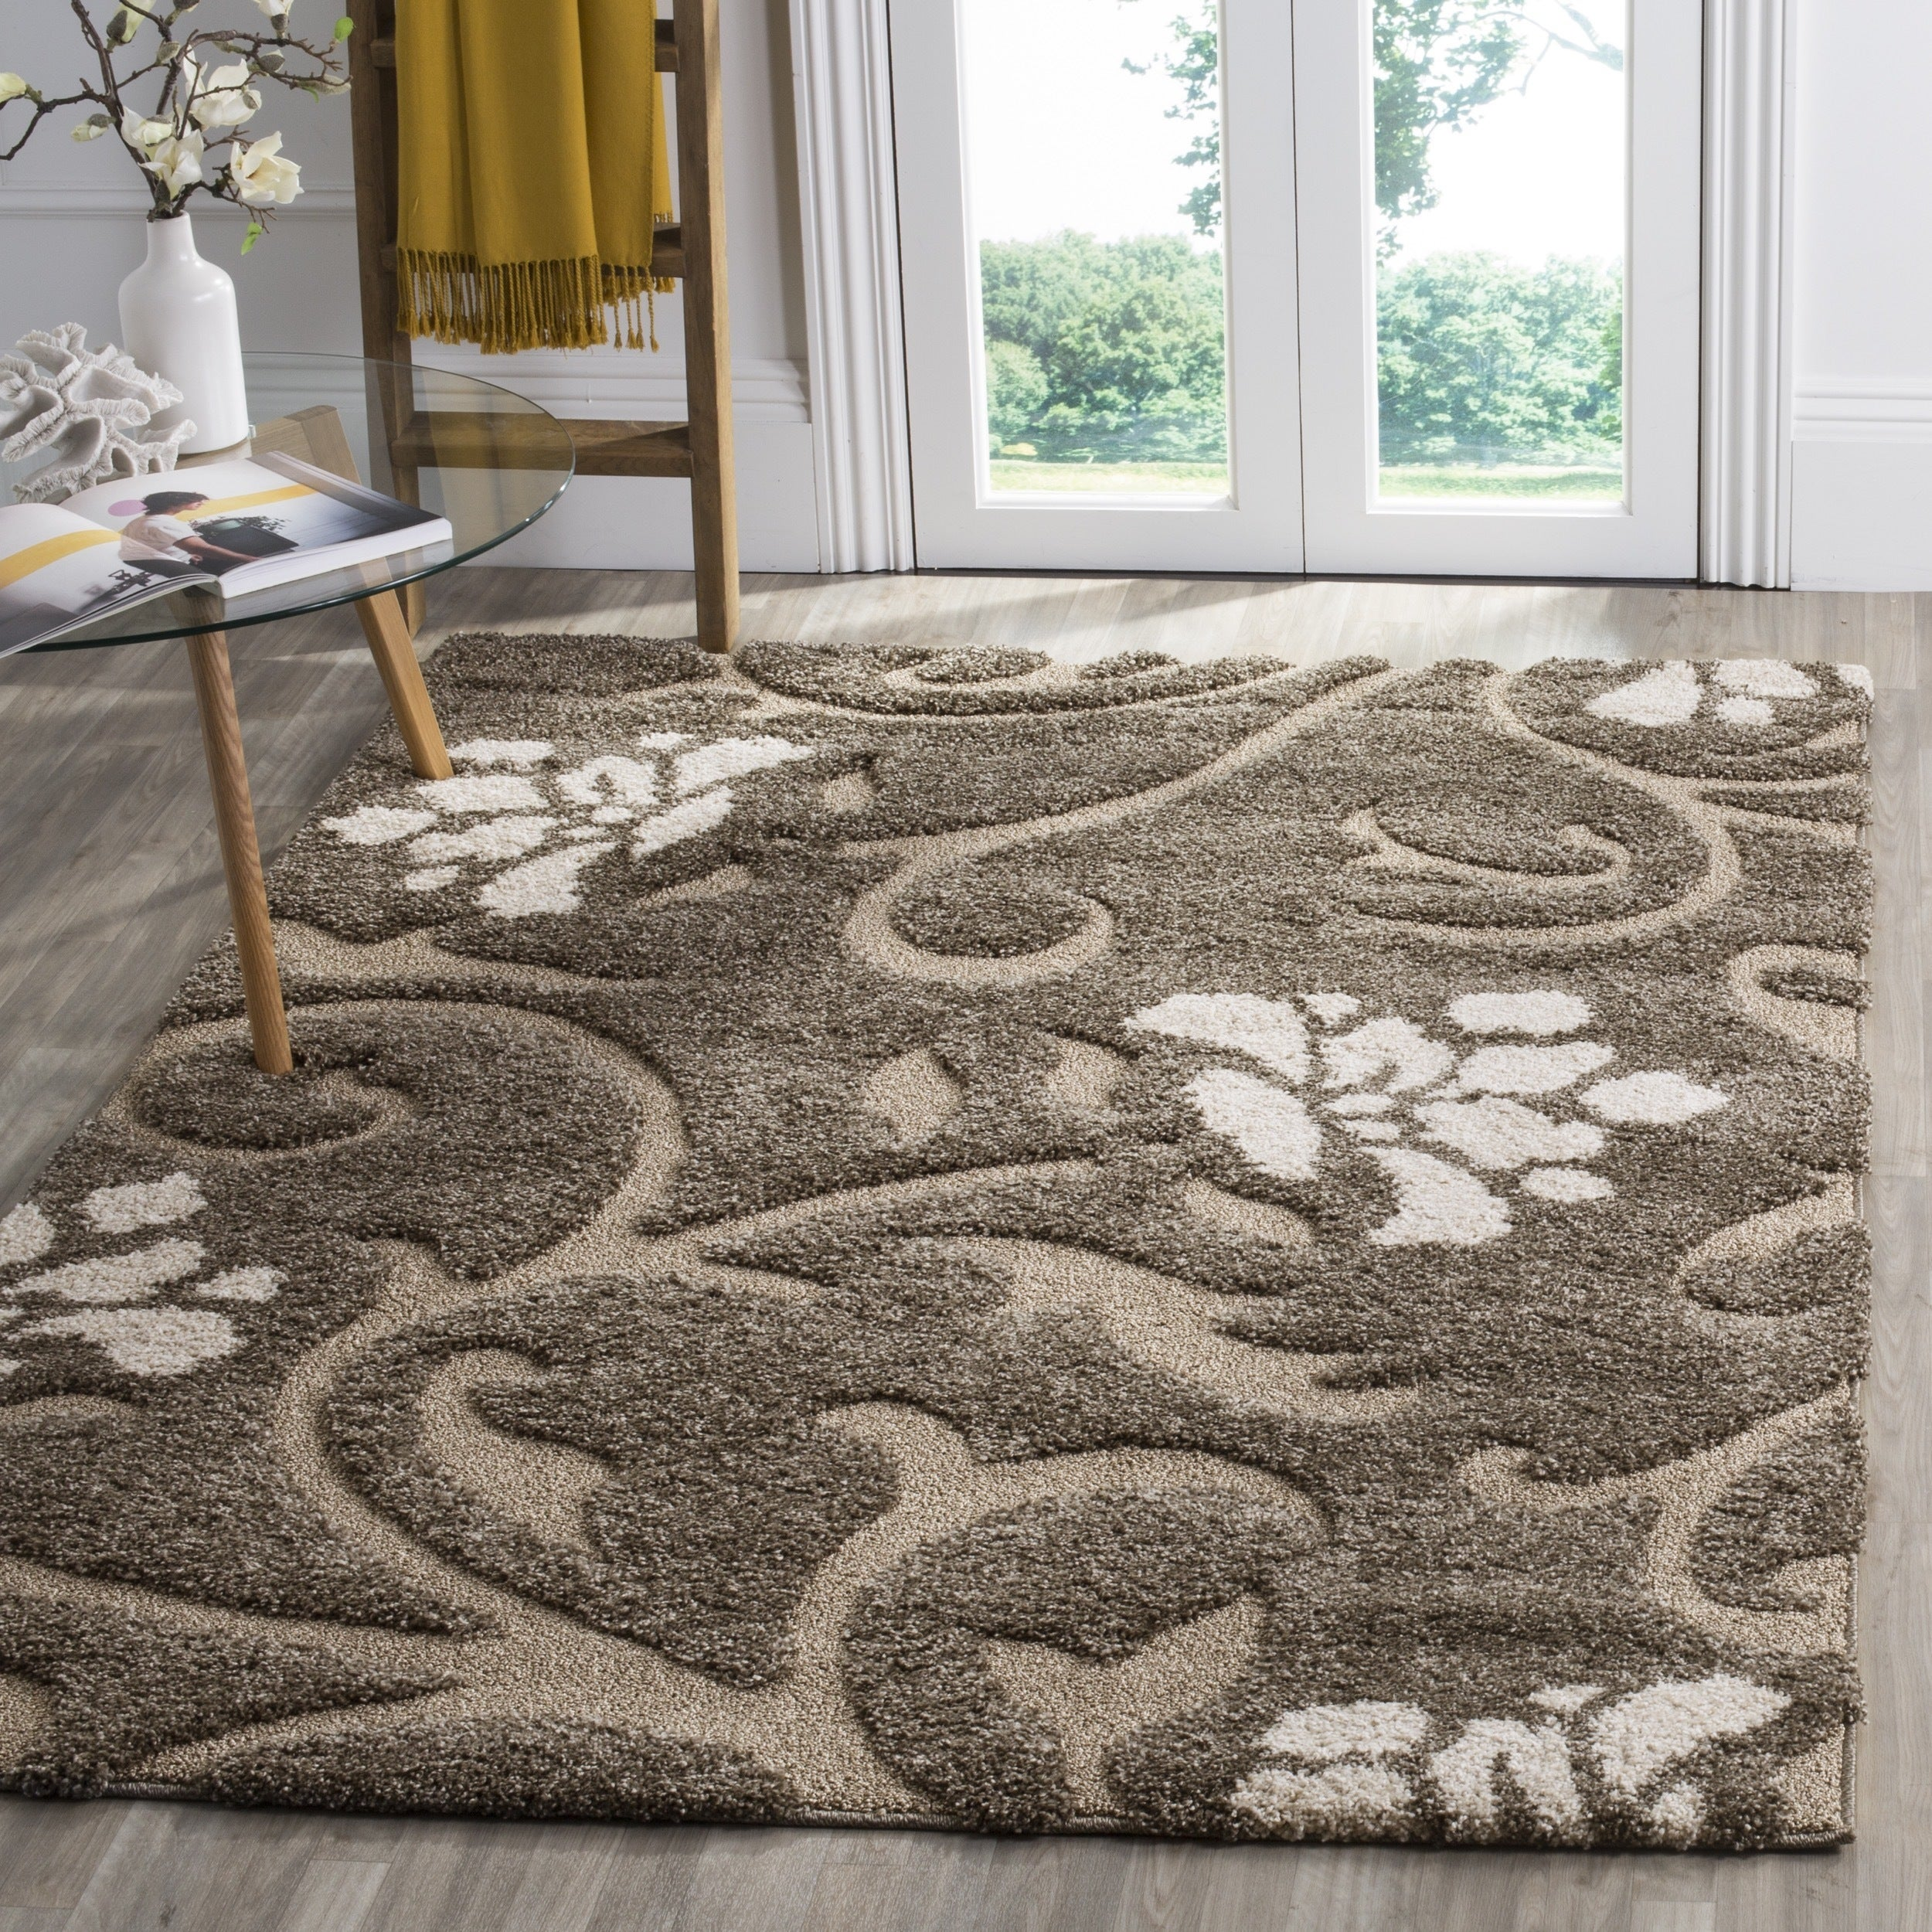 garden shipping beige safavieh overstock product florida today shag area home smoke free rug x